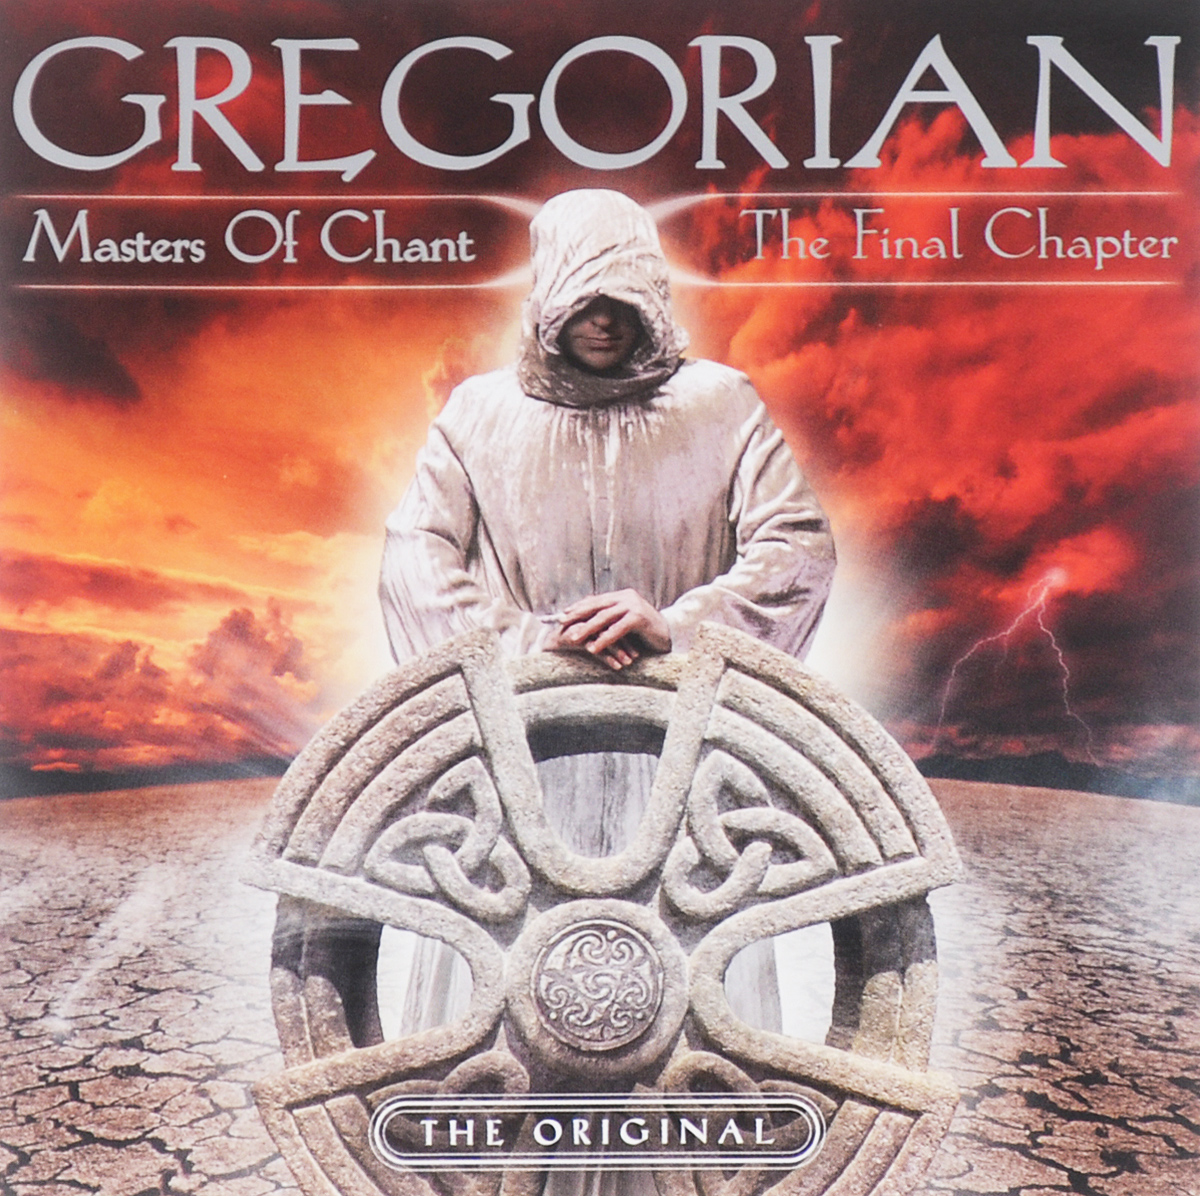 Gregorian. Masters Of Chant X: The Final Chapter